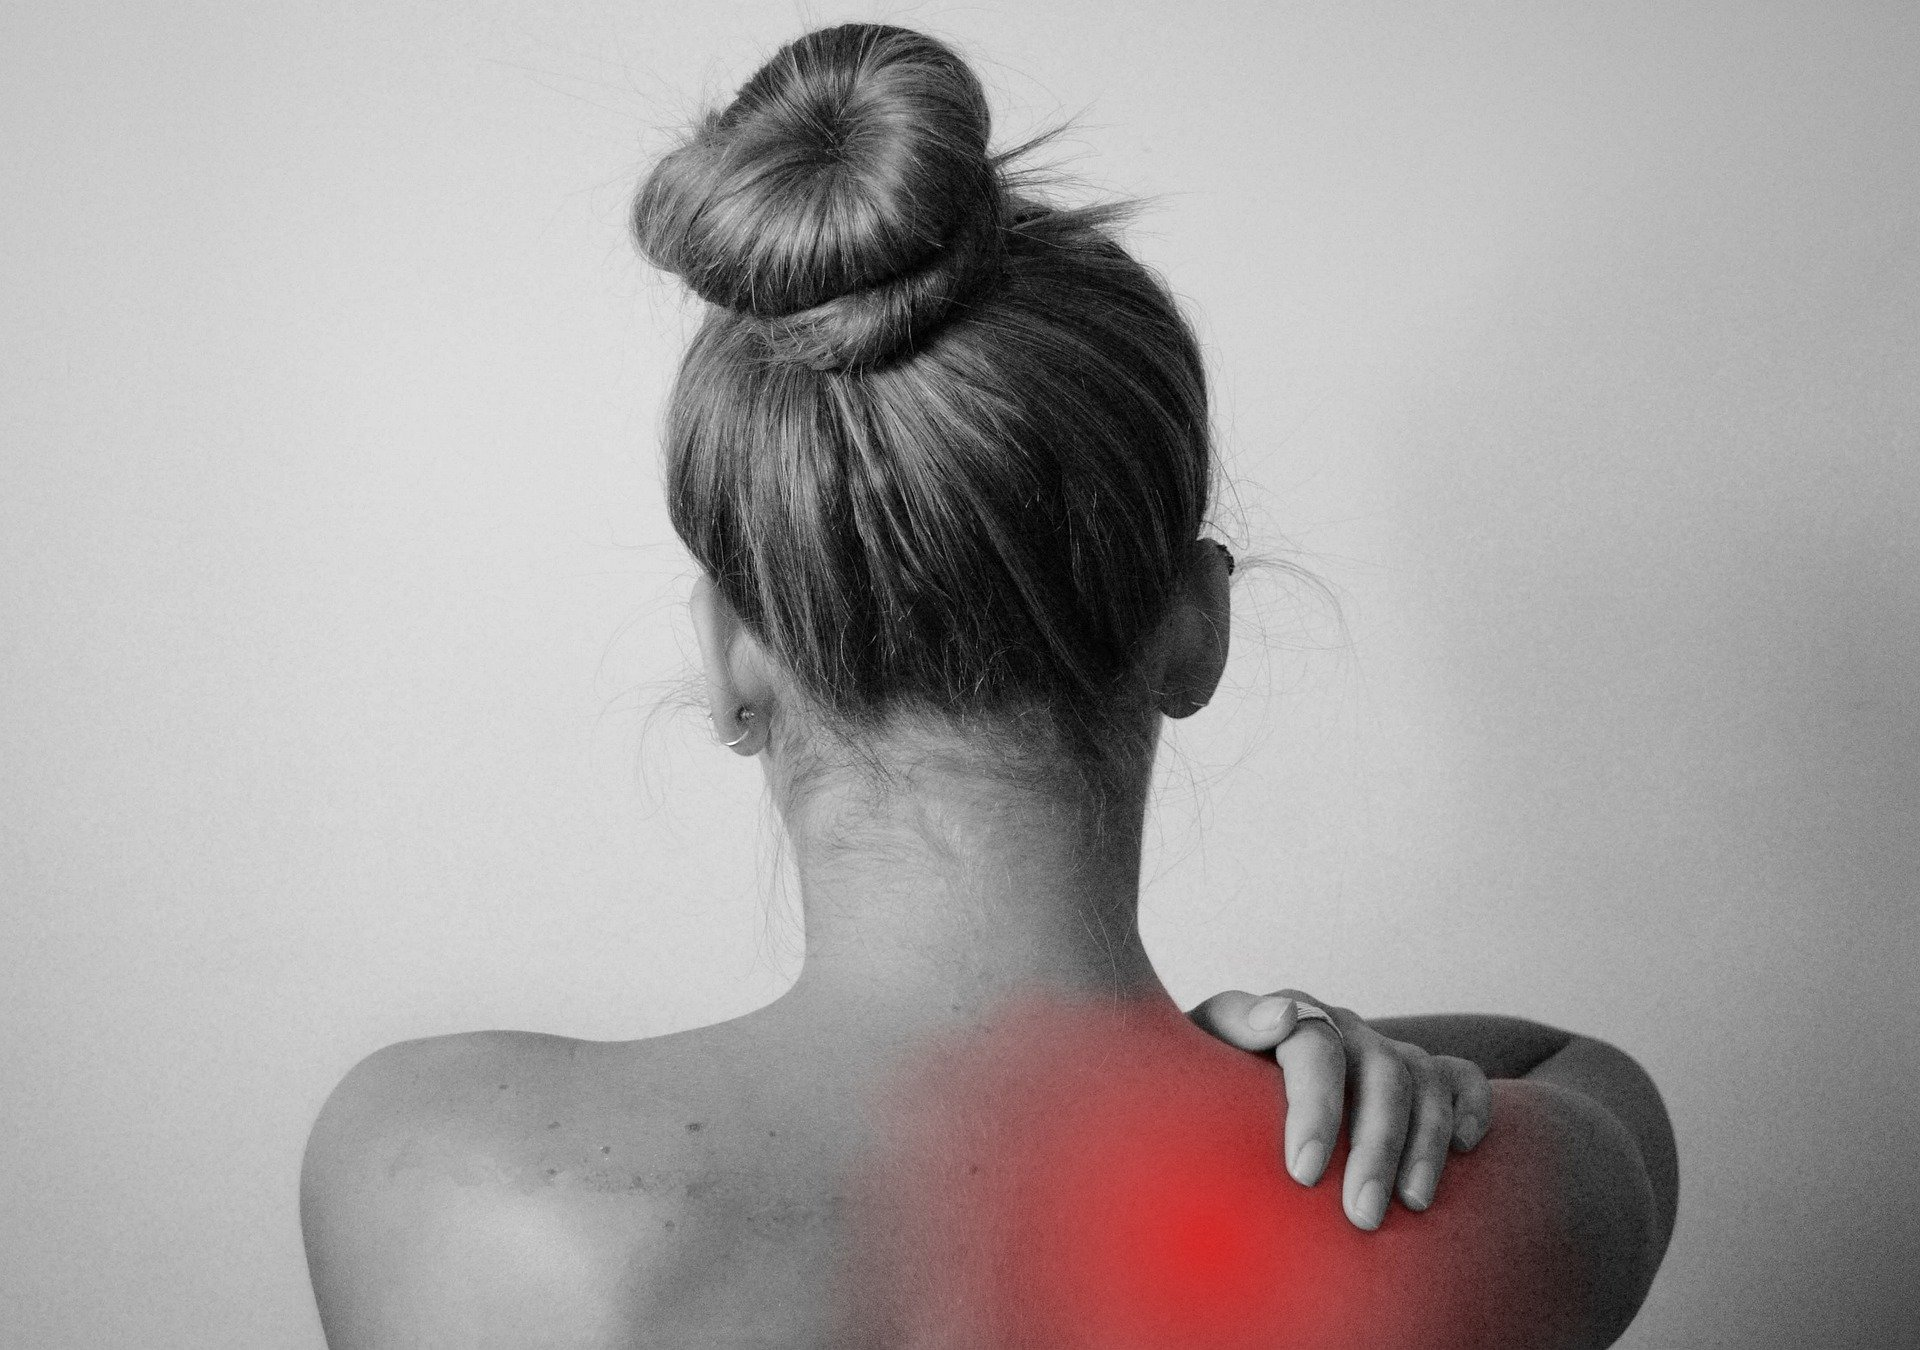 THE TOP THREE YOGA POSES FOR BACK PAIN